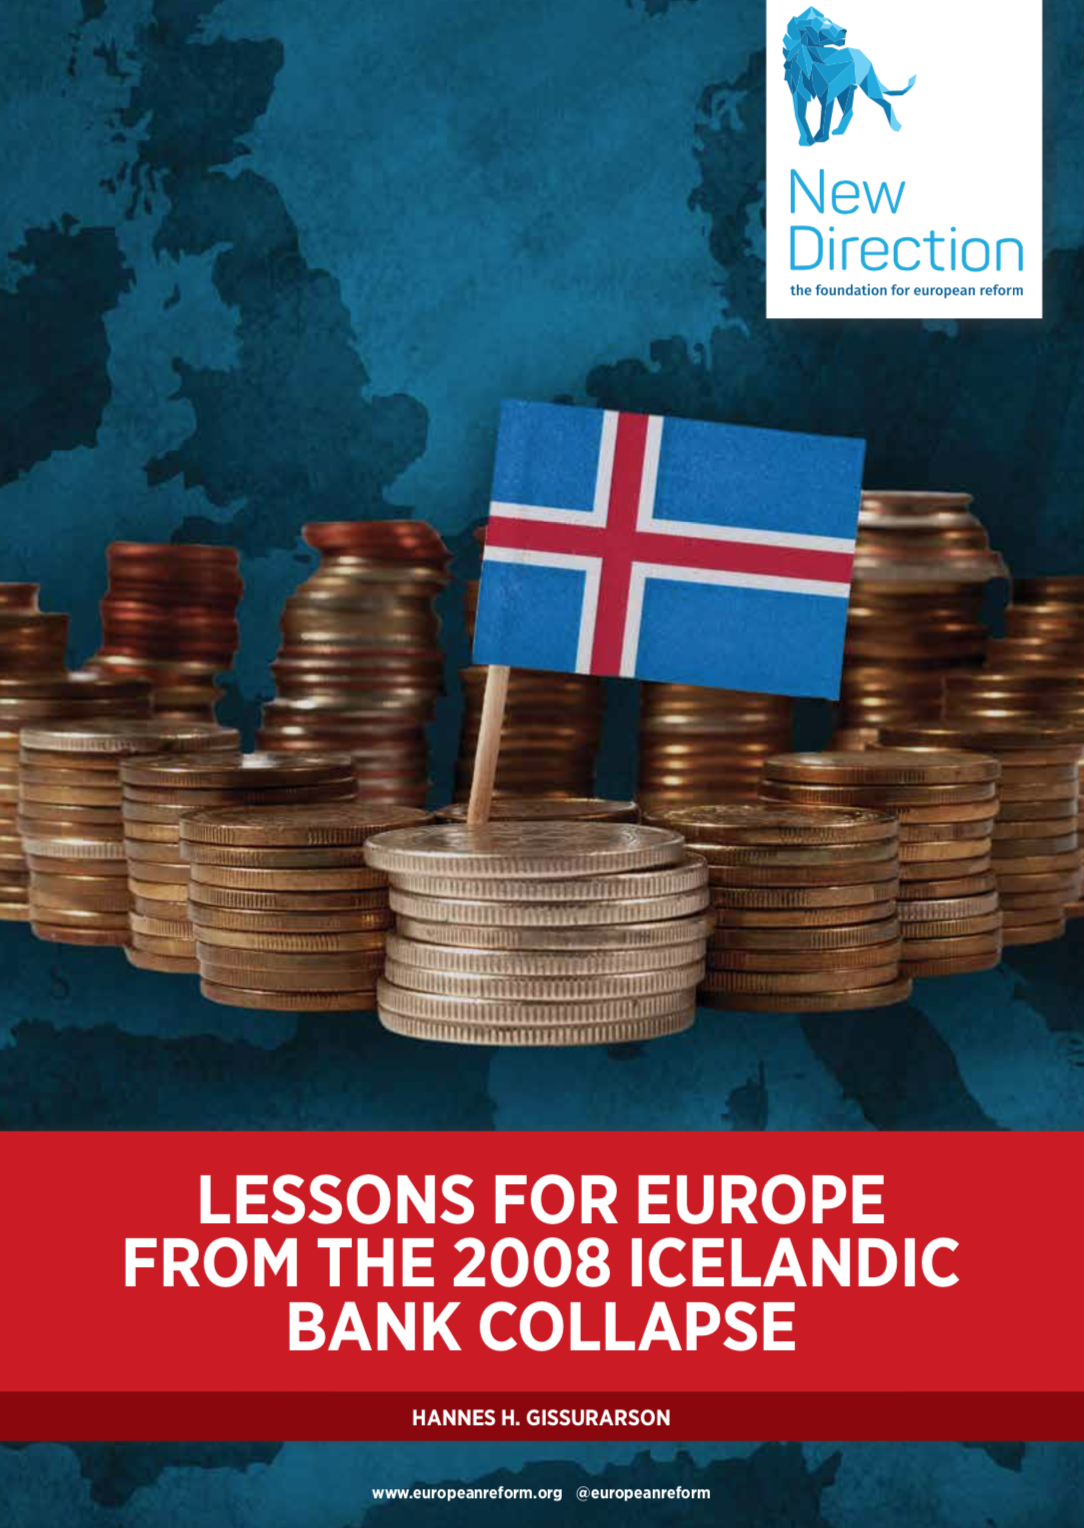 LESSONS FOR EUROPE FROM THE 2008 ICELANDIC BANK COLLAPSE